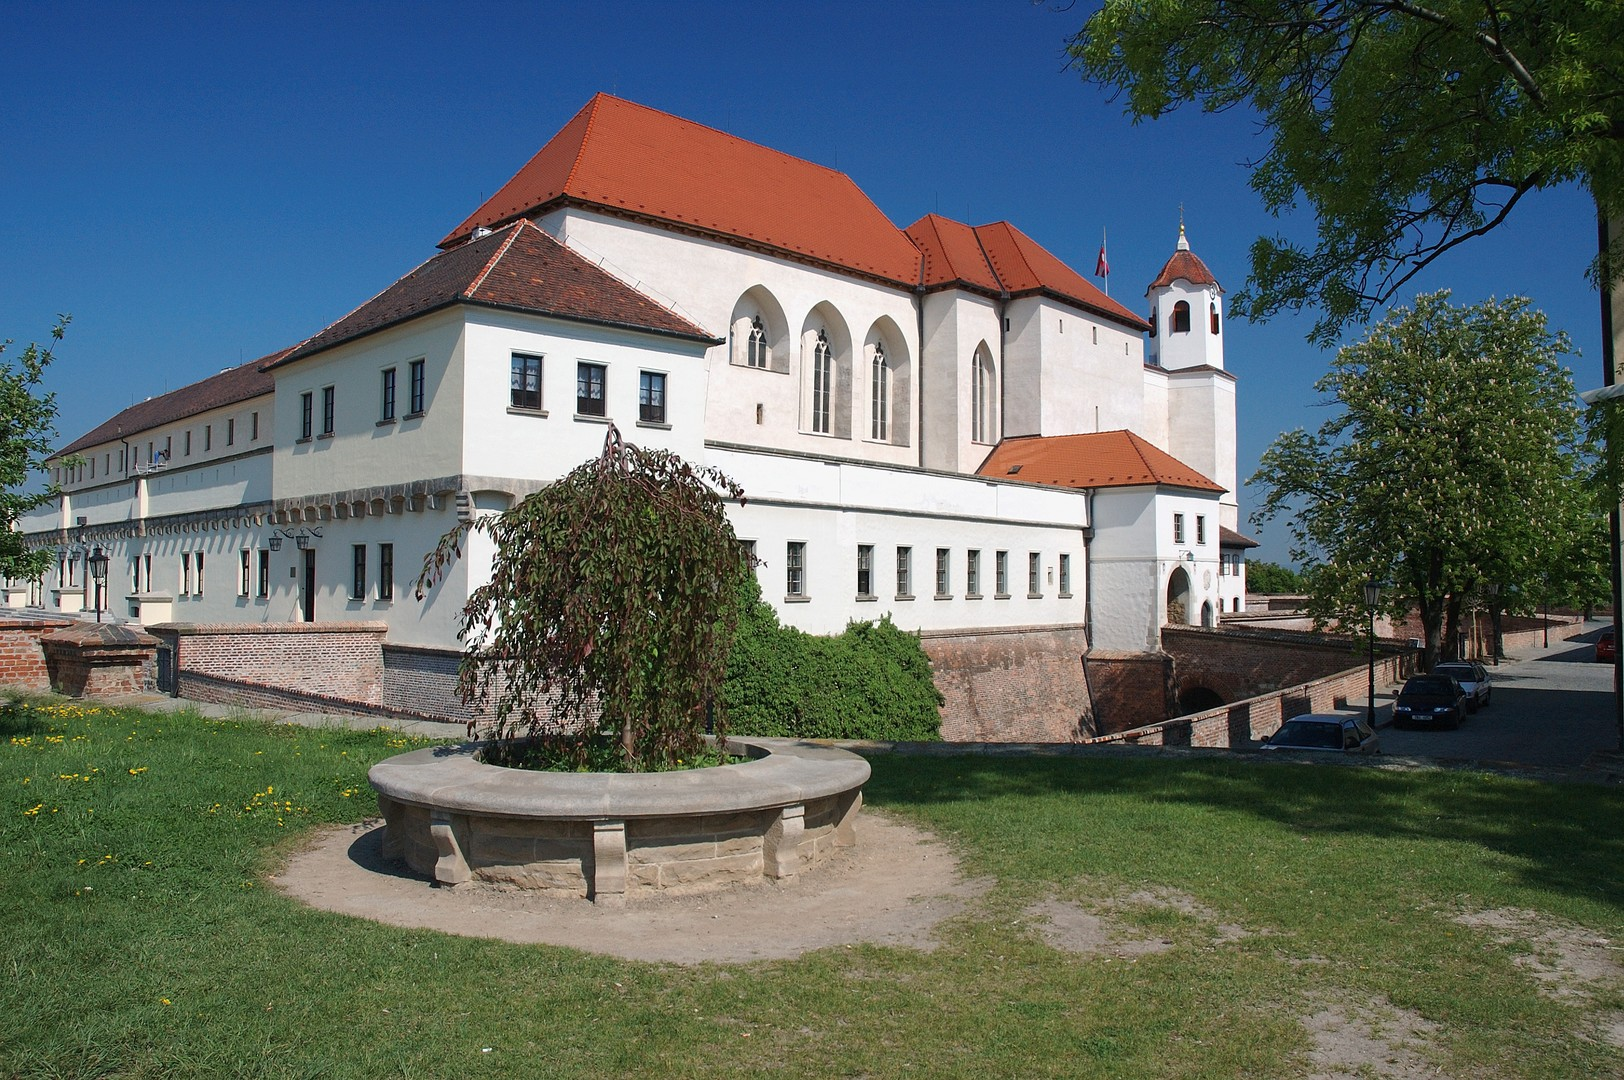 The castle of Brno - Spilberk